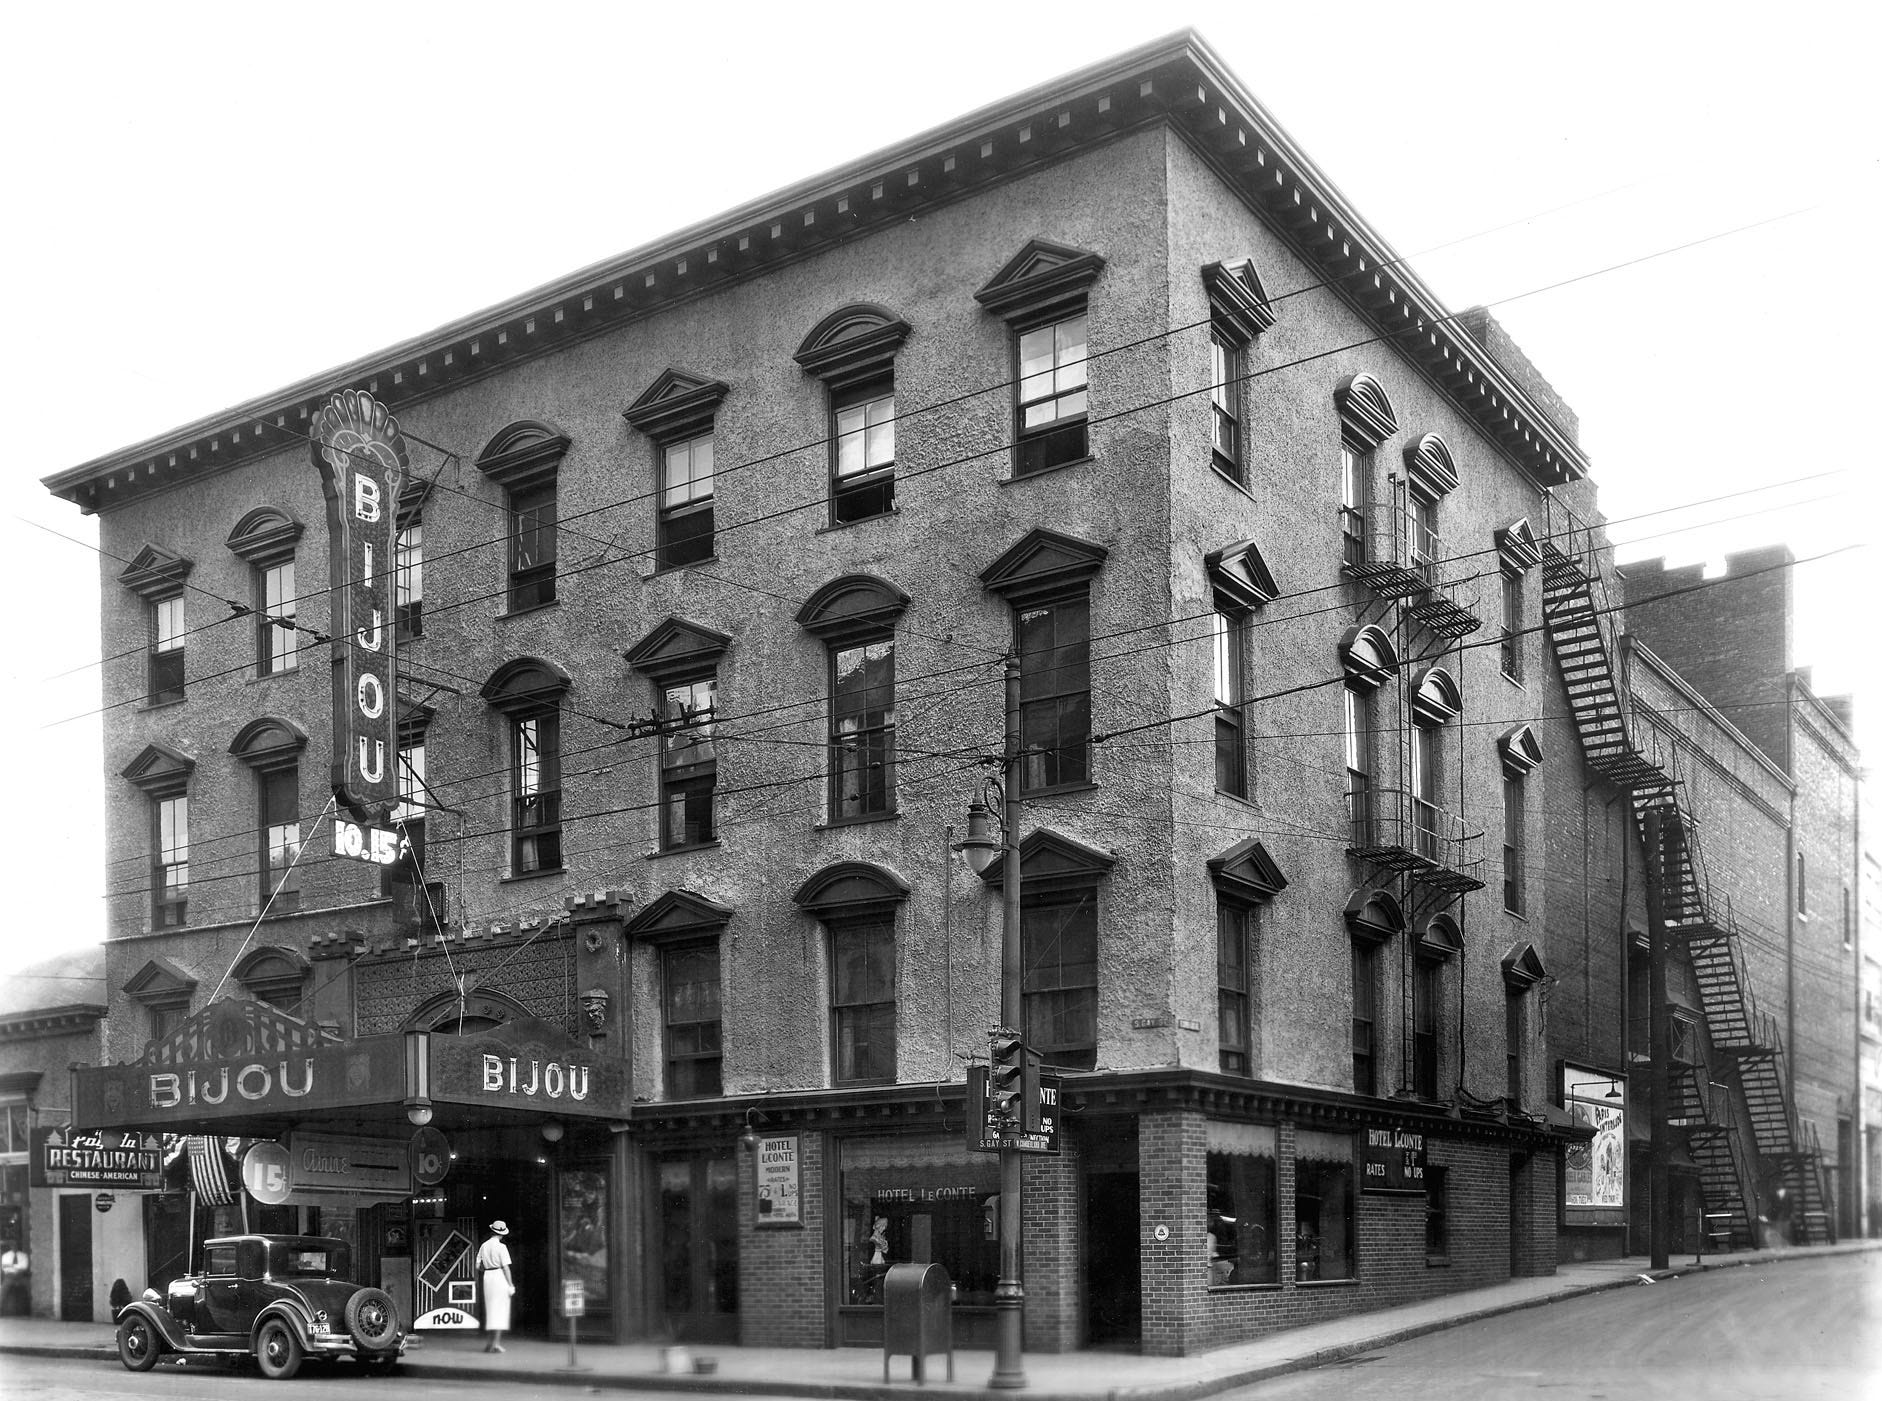 """Bijou Theatre exterior, circa 1935. """"The 95-year-old, 750 seat theater has earned a reputation as the most acoustically perfect theater in the region, and it's got a deep history not even the Tennessee can touch..."""""""